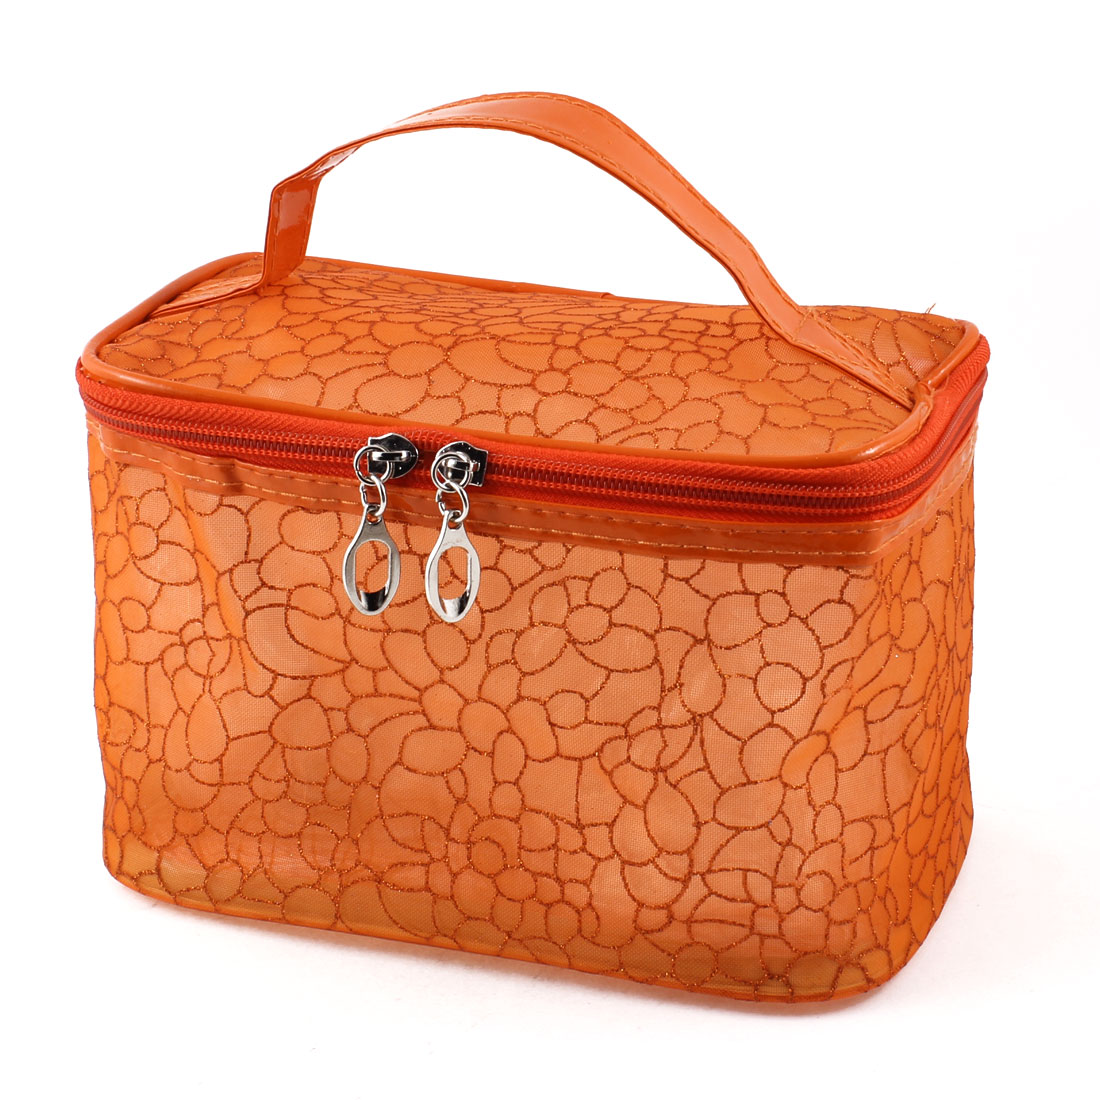 Stone Block Print Zipper Closure Makeup Cosmetic Bag Holder Orange for Woman